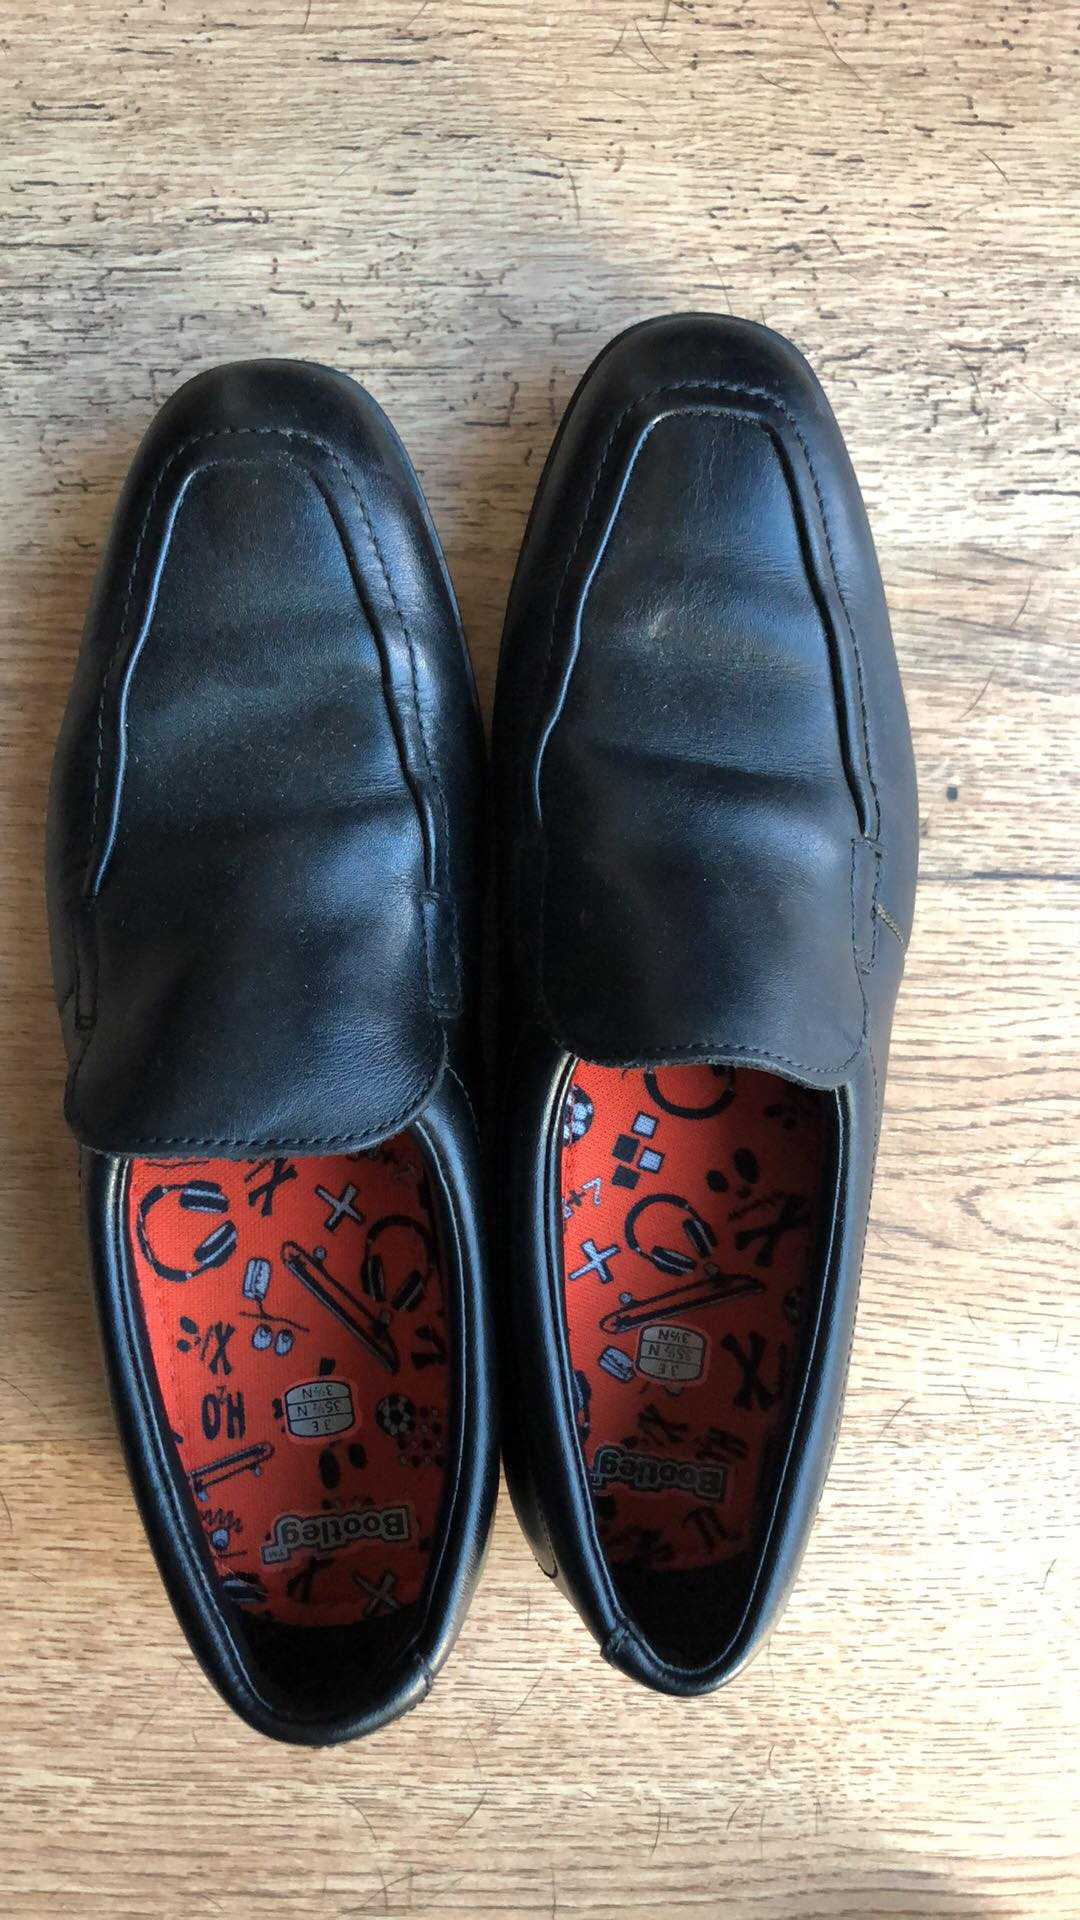 File:Boys school shoes from Clarks